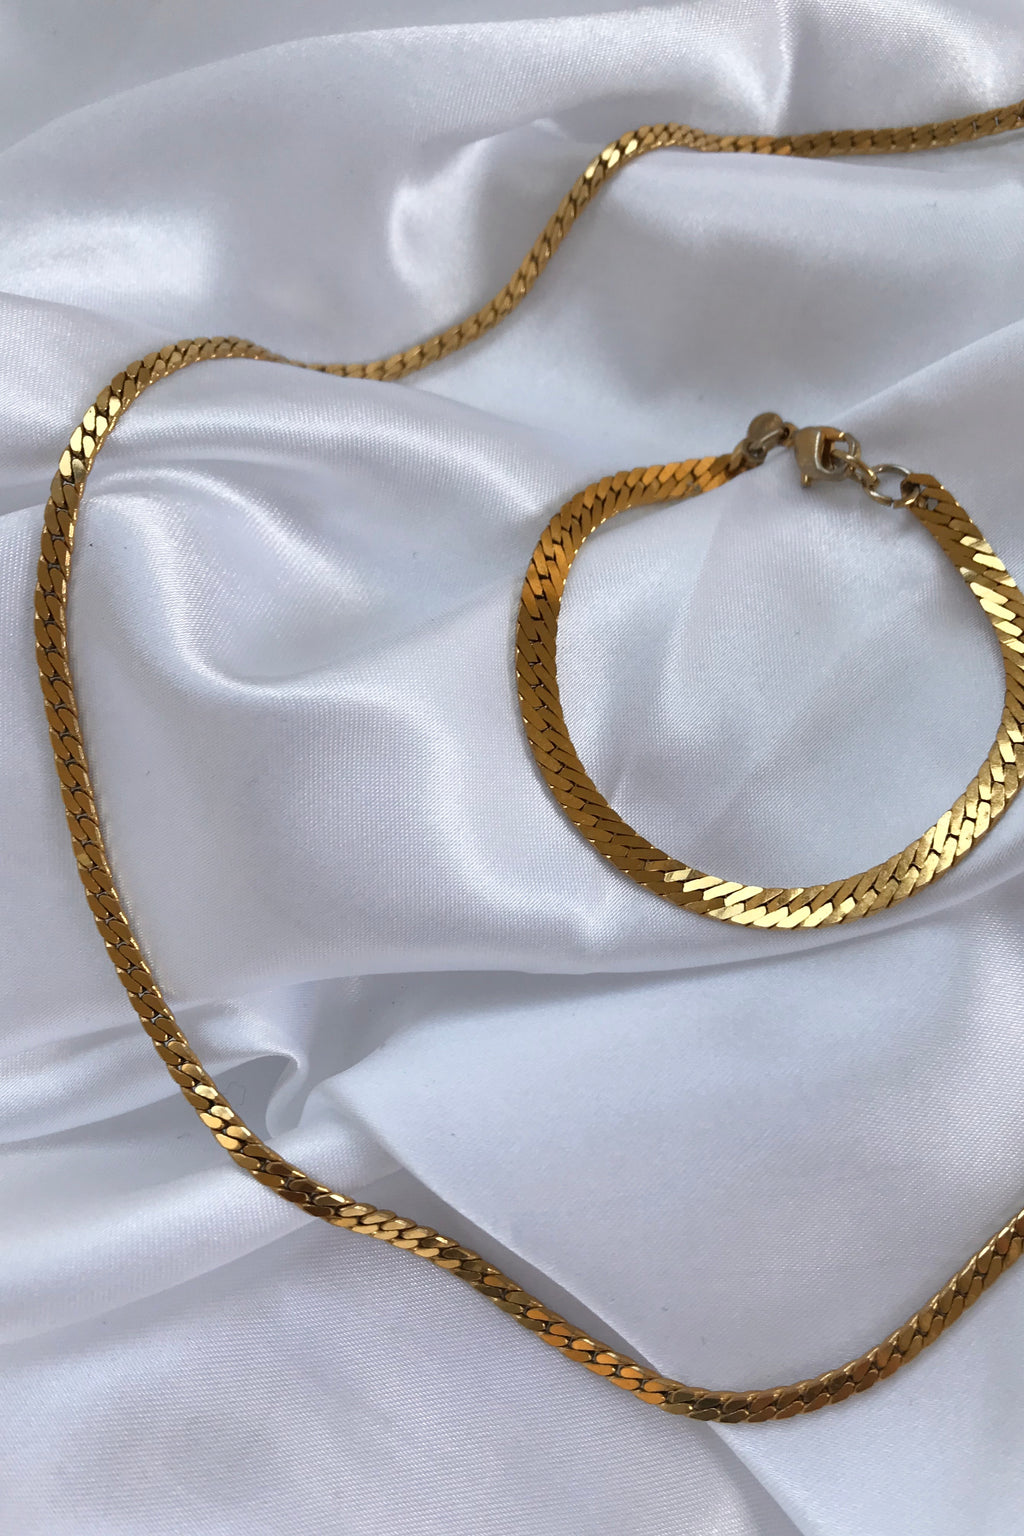 Vintage 90s Gold Plated Gold Tone Chain Necklace & Bracelet Set By Monet